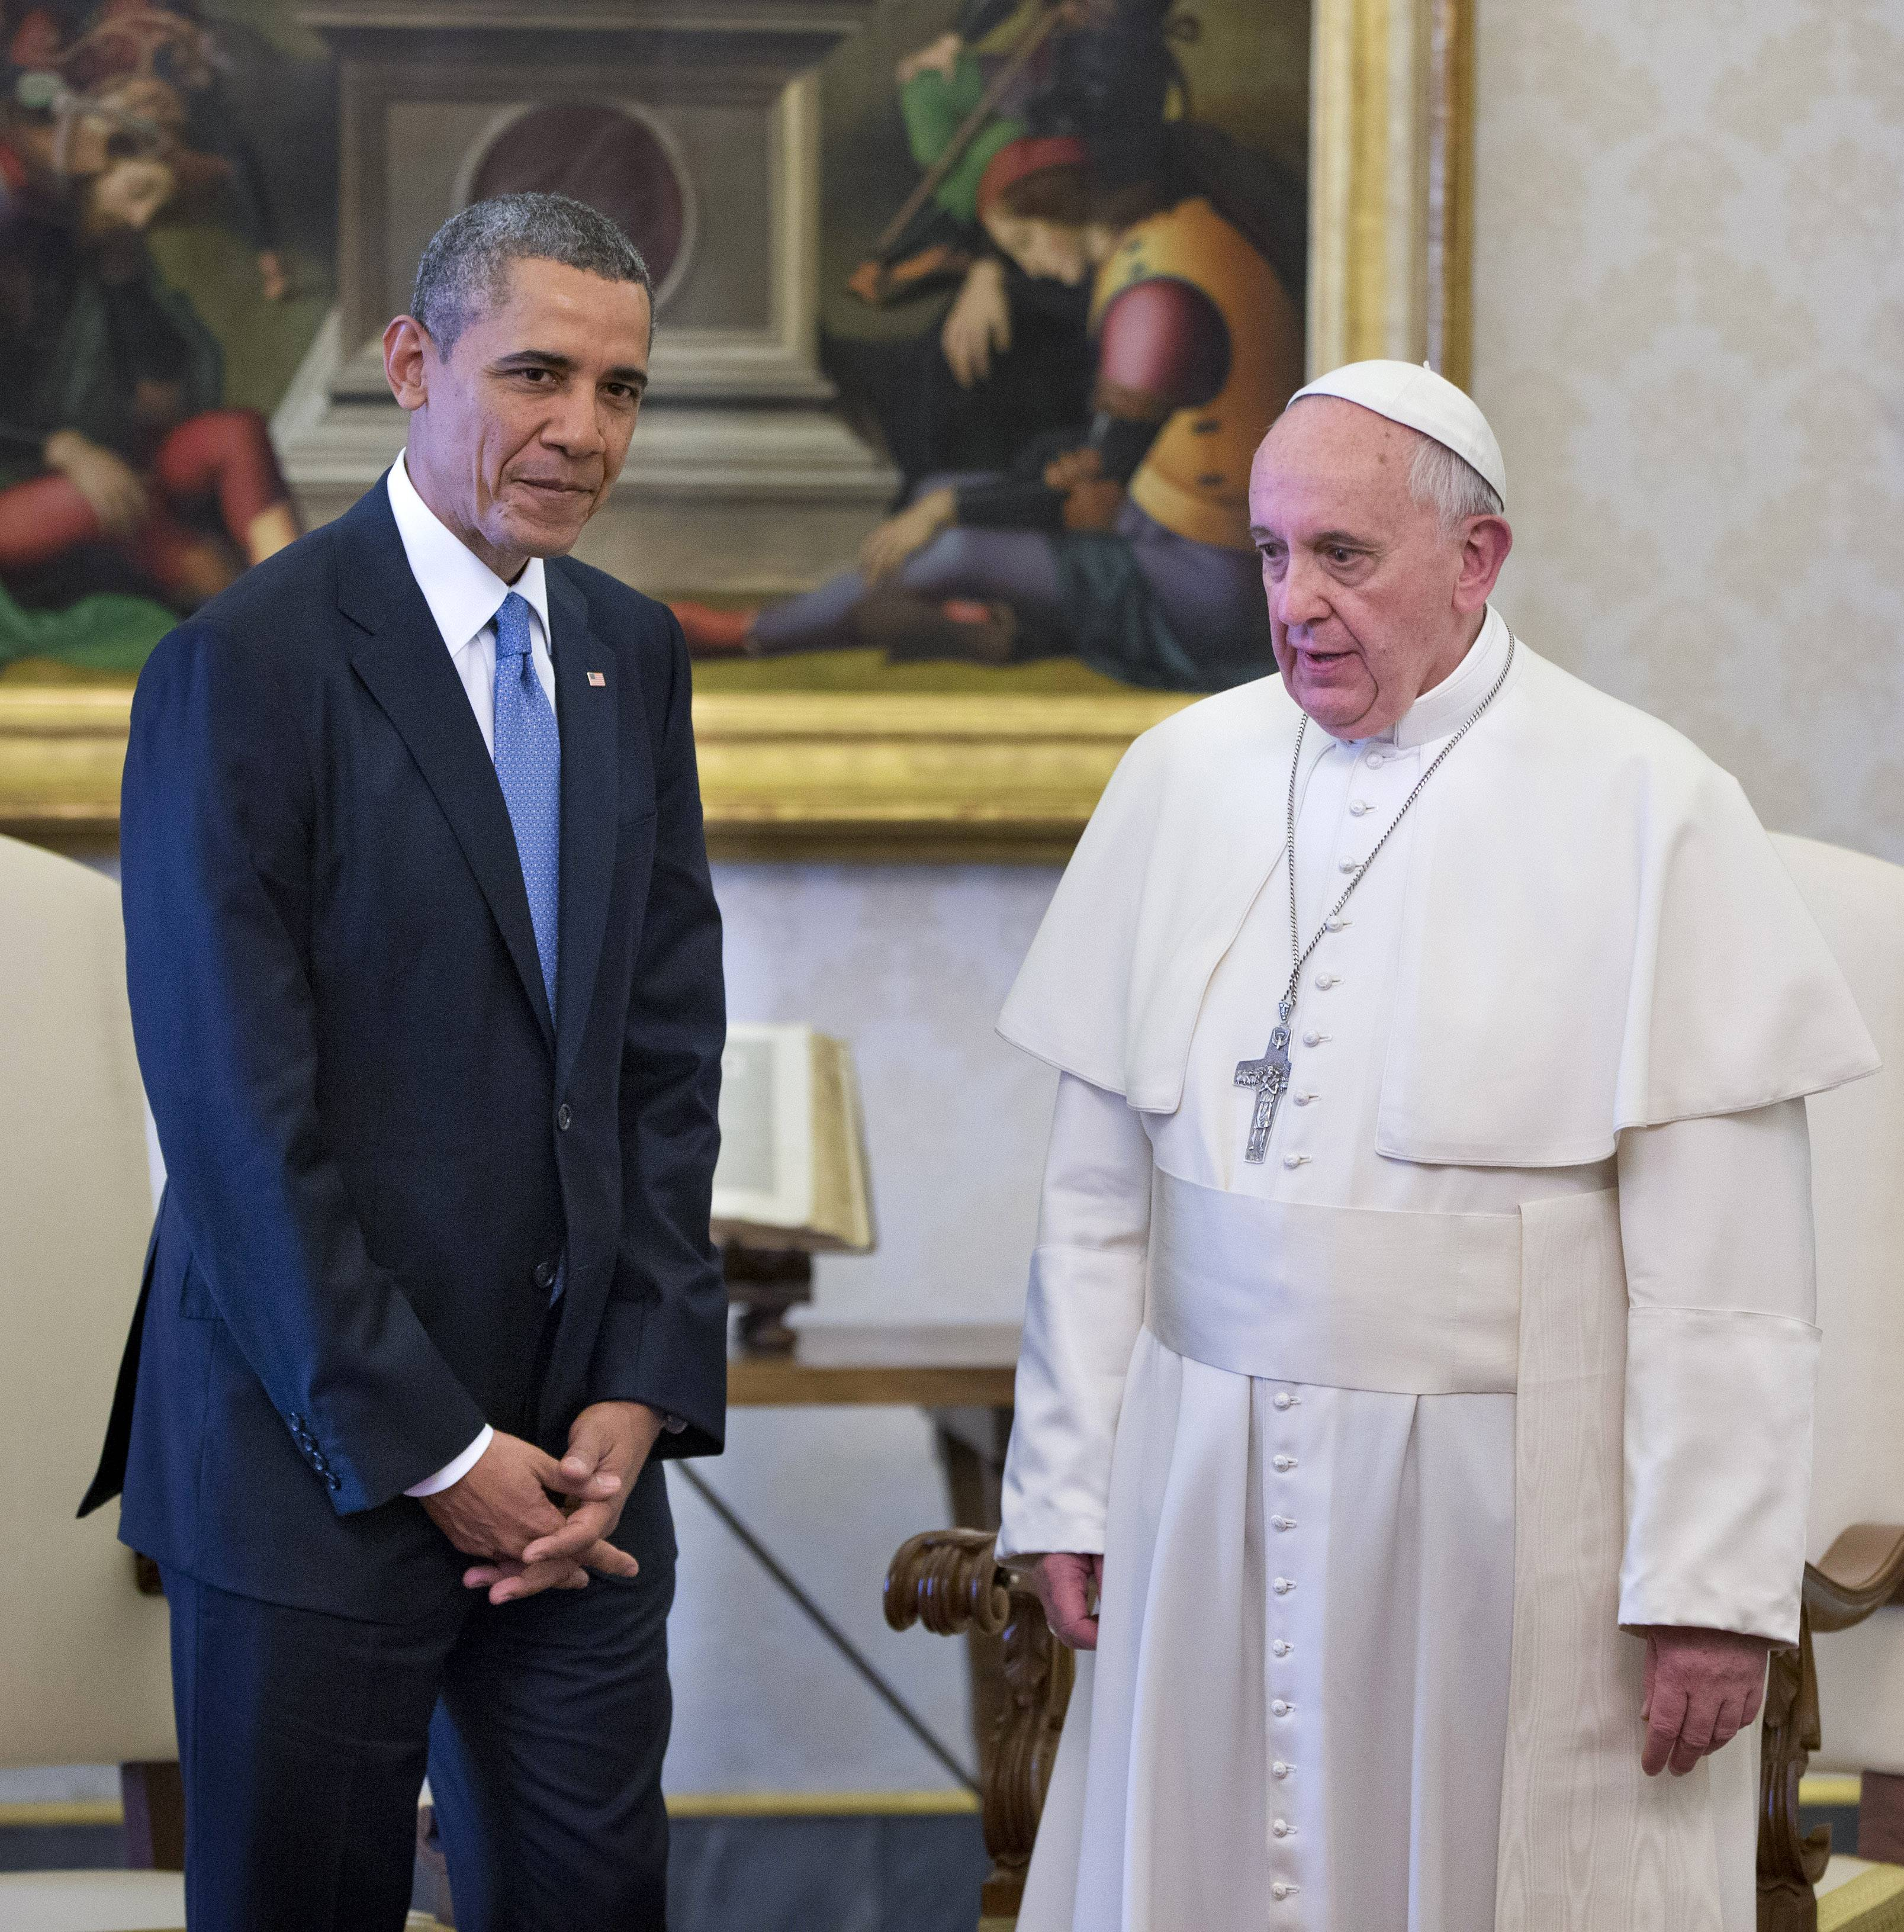 Pope Francis, shown meeting at the Vatican last year with President Barack Obama, describes climate change as a global problem with grave implications requiring a bold cultural revolution. The pope is bringing that message this week to Washington, D.C., where he is expected to call on faith-based organizations to rally for action on climate change.